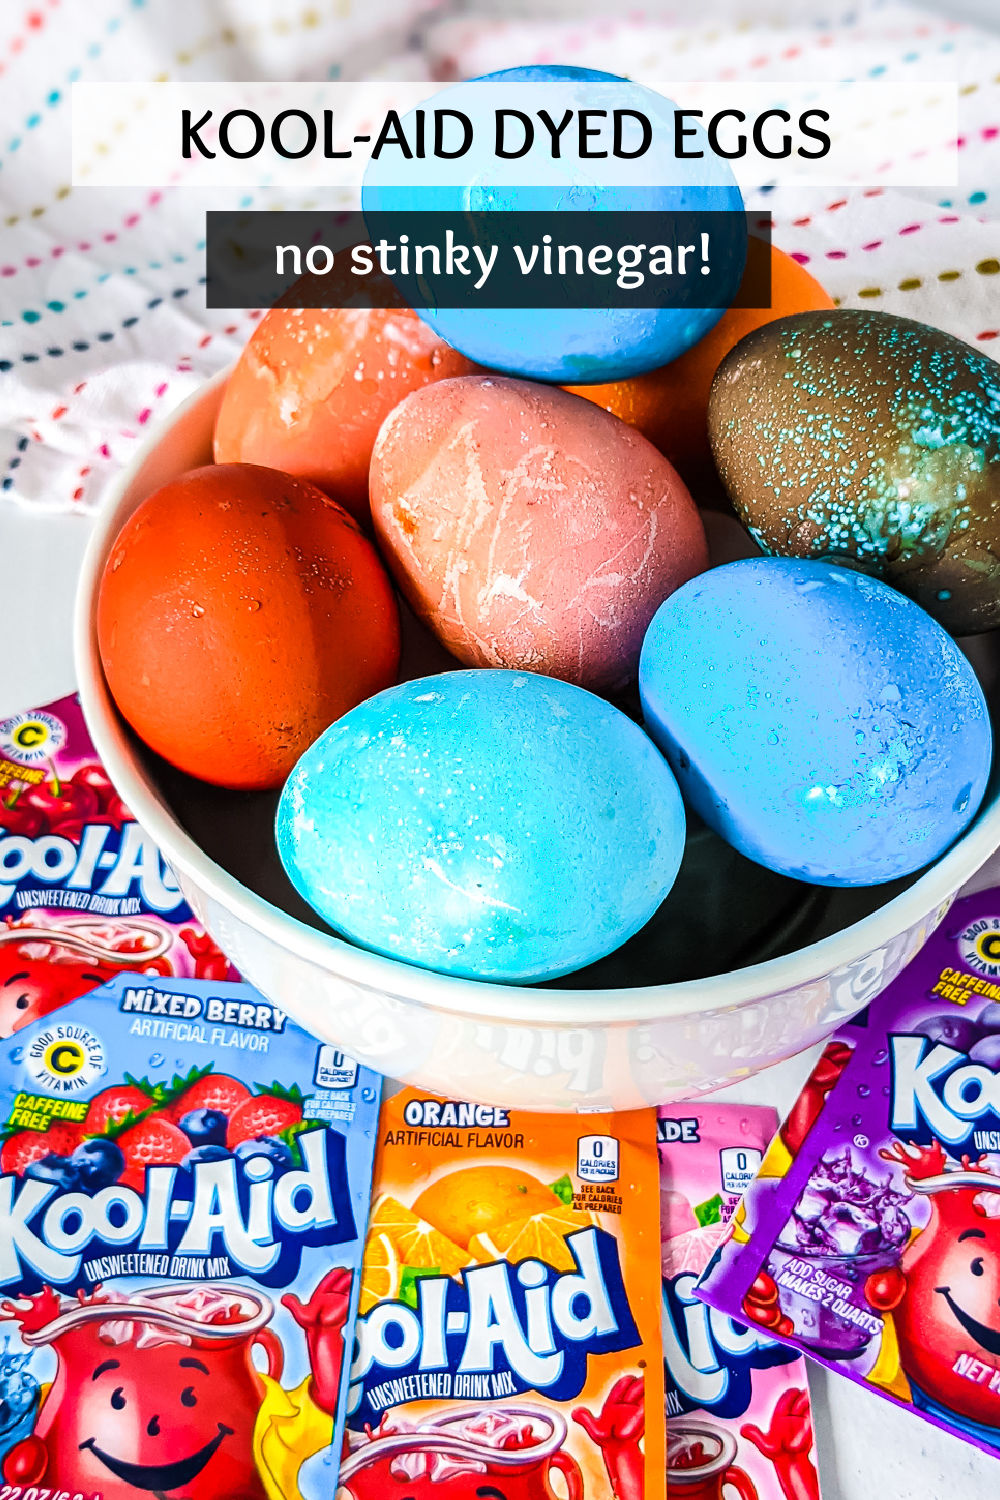 Want to try a new way to do your Easter egg coloring this year? Dyeing Easter eggs with Kool-Aid is different, fun, and smells great - no vinegar! | www.persnicketyplates.com